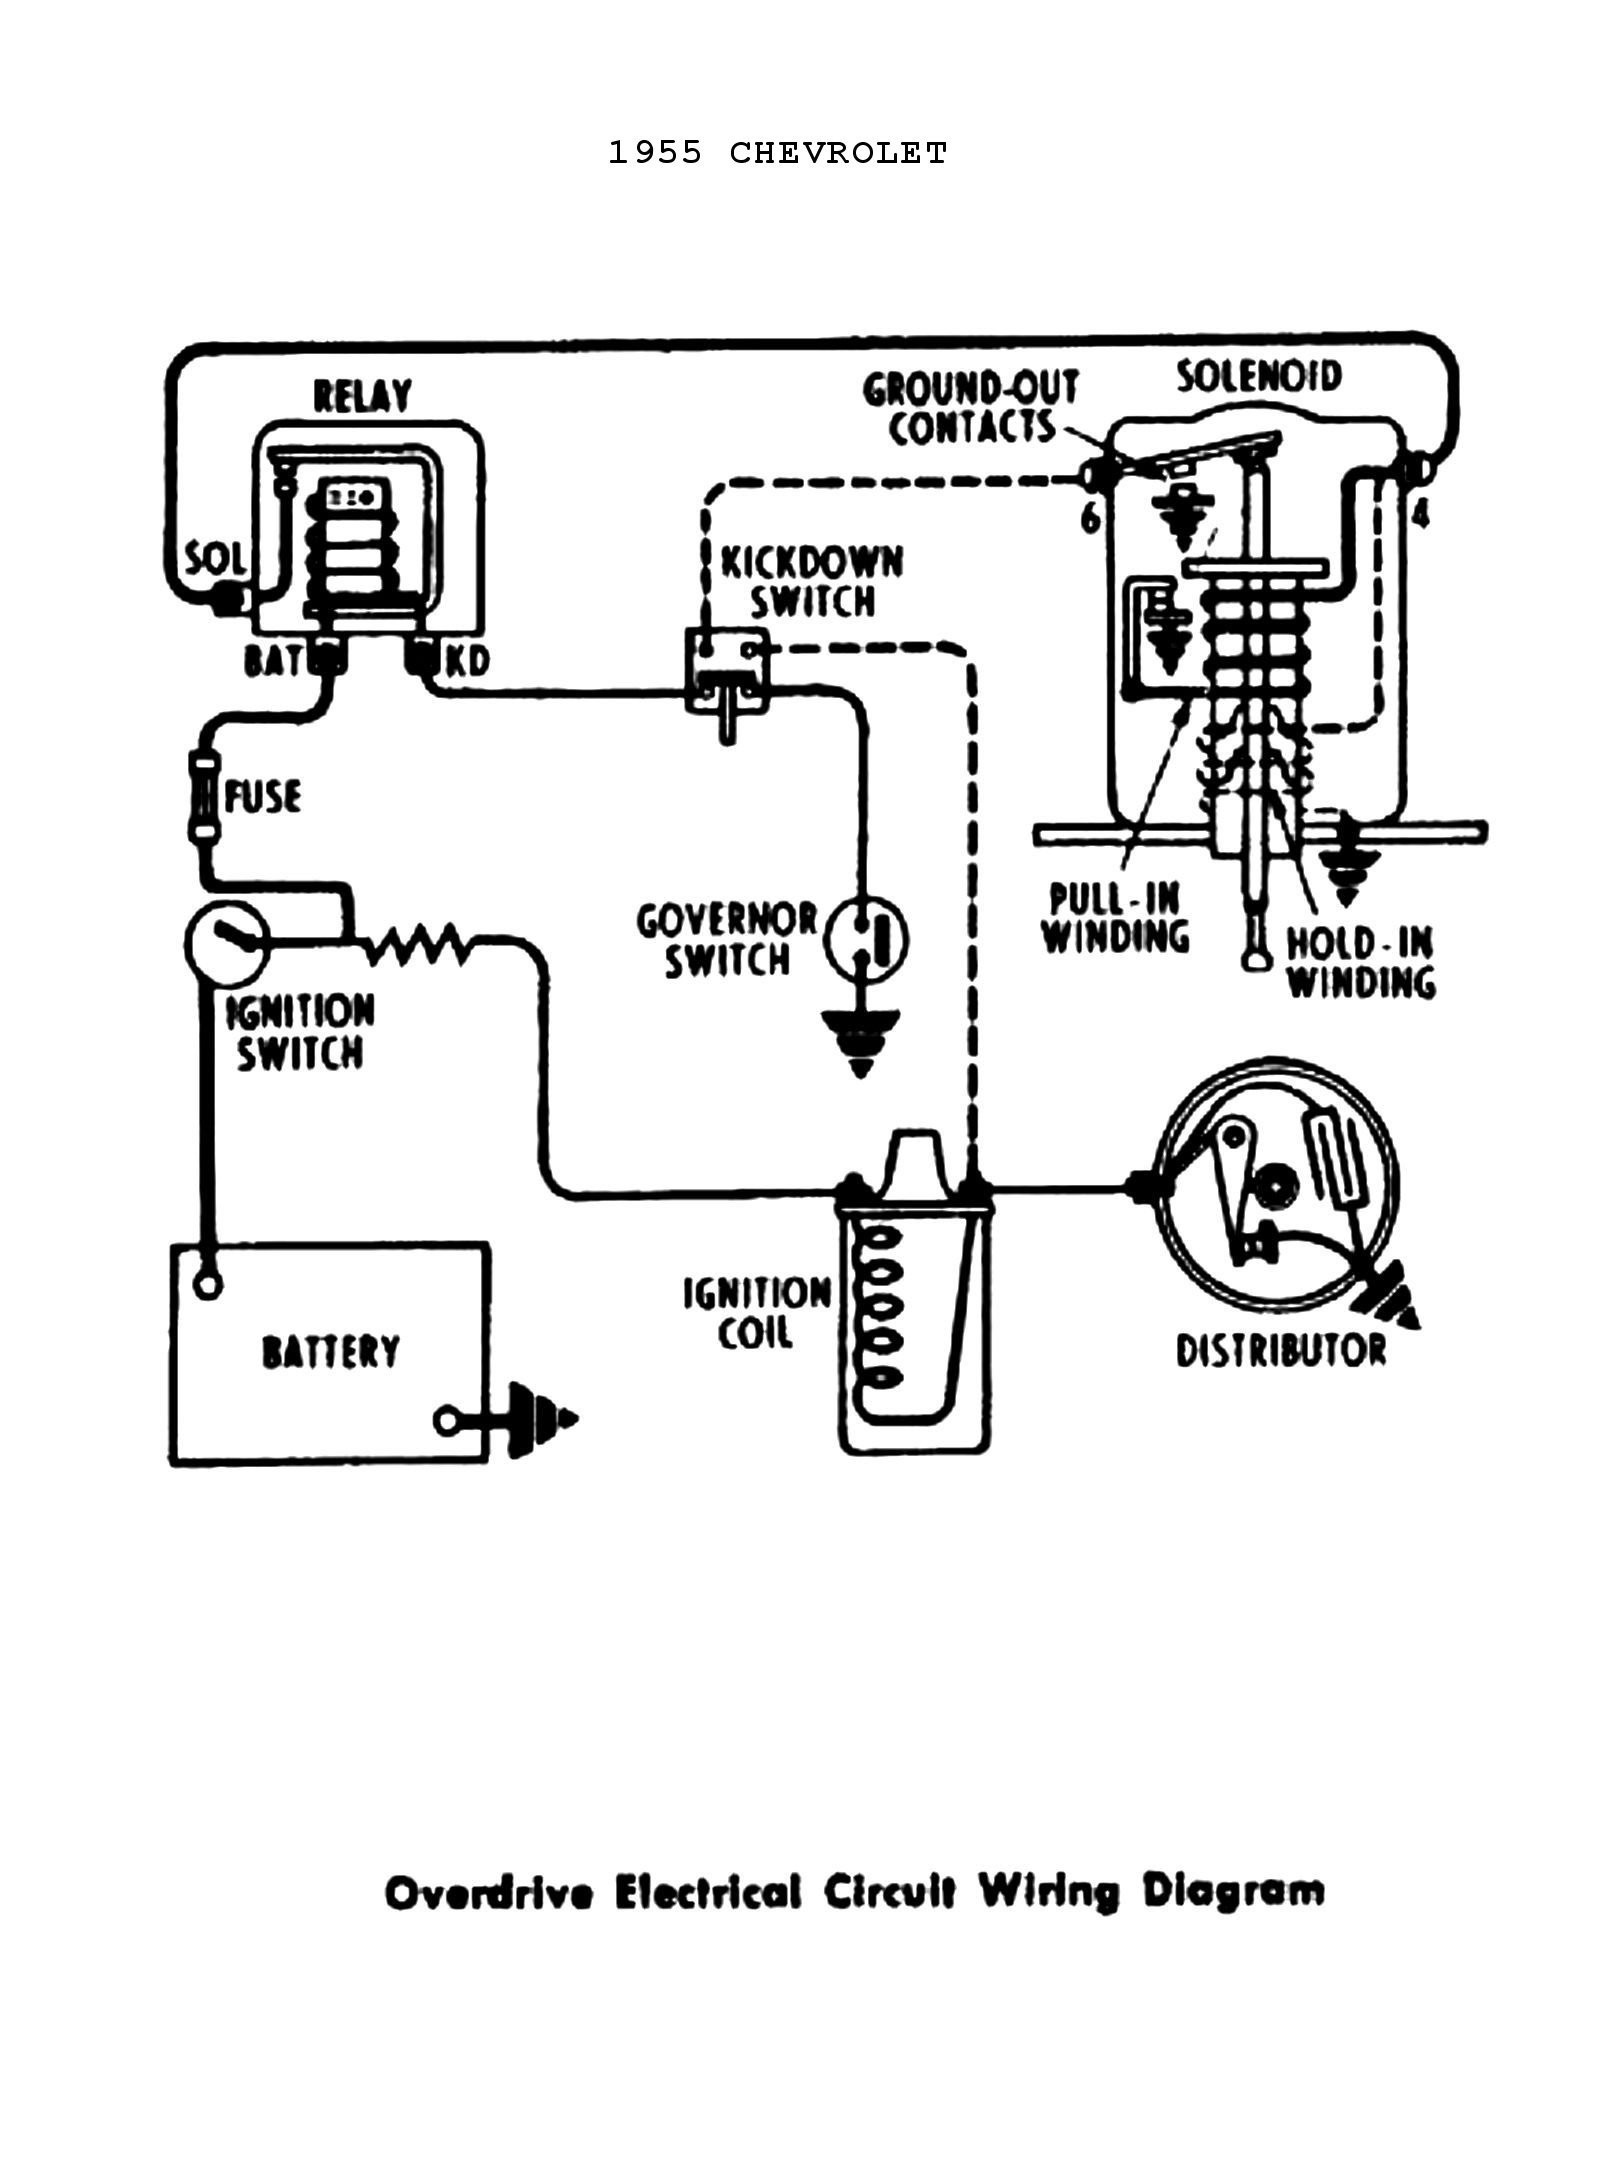 Chevy 350 Ignition Coil Wiring Diagram Wiring Diagram Image